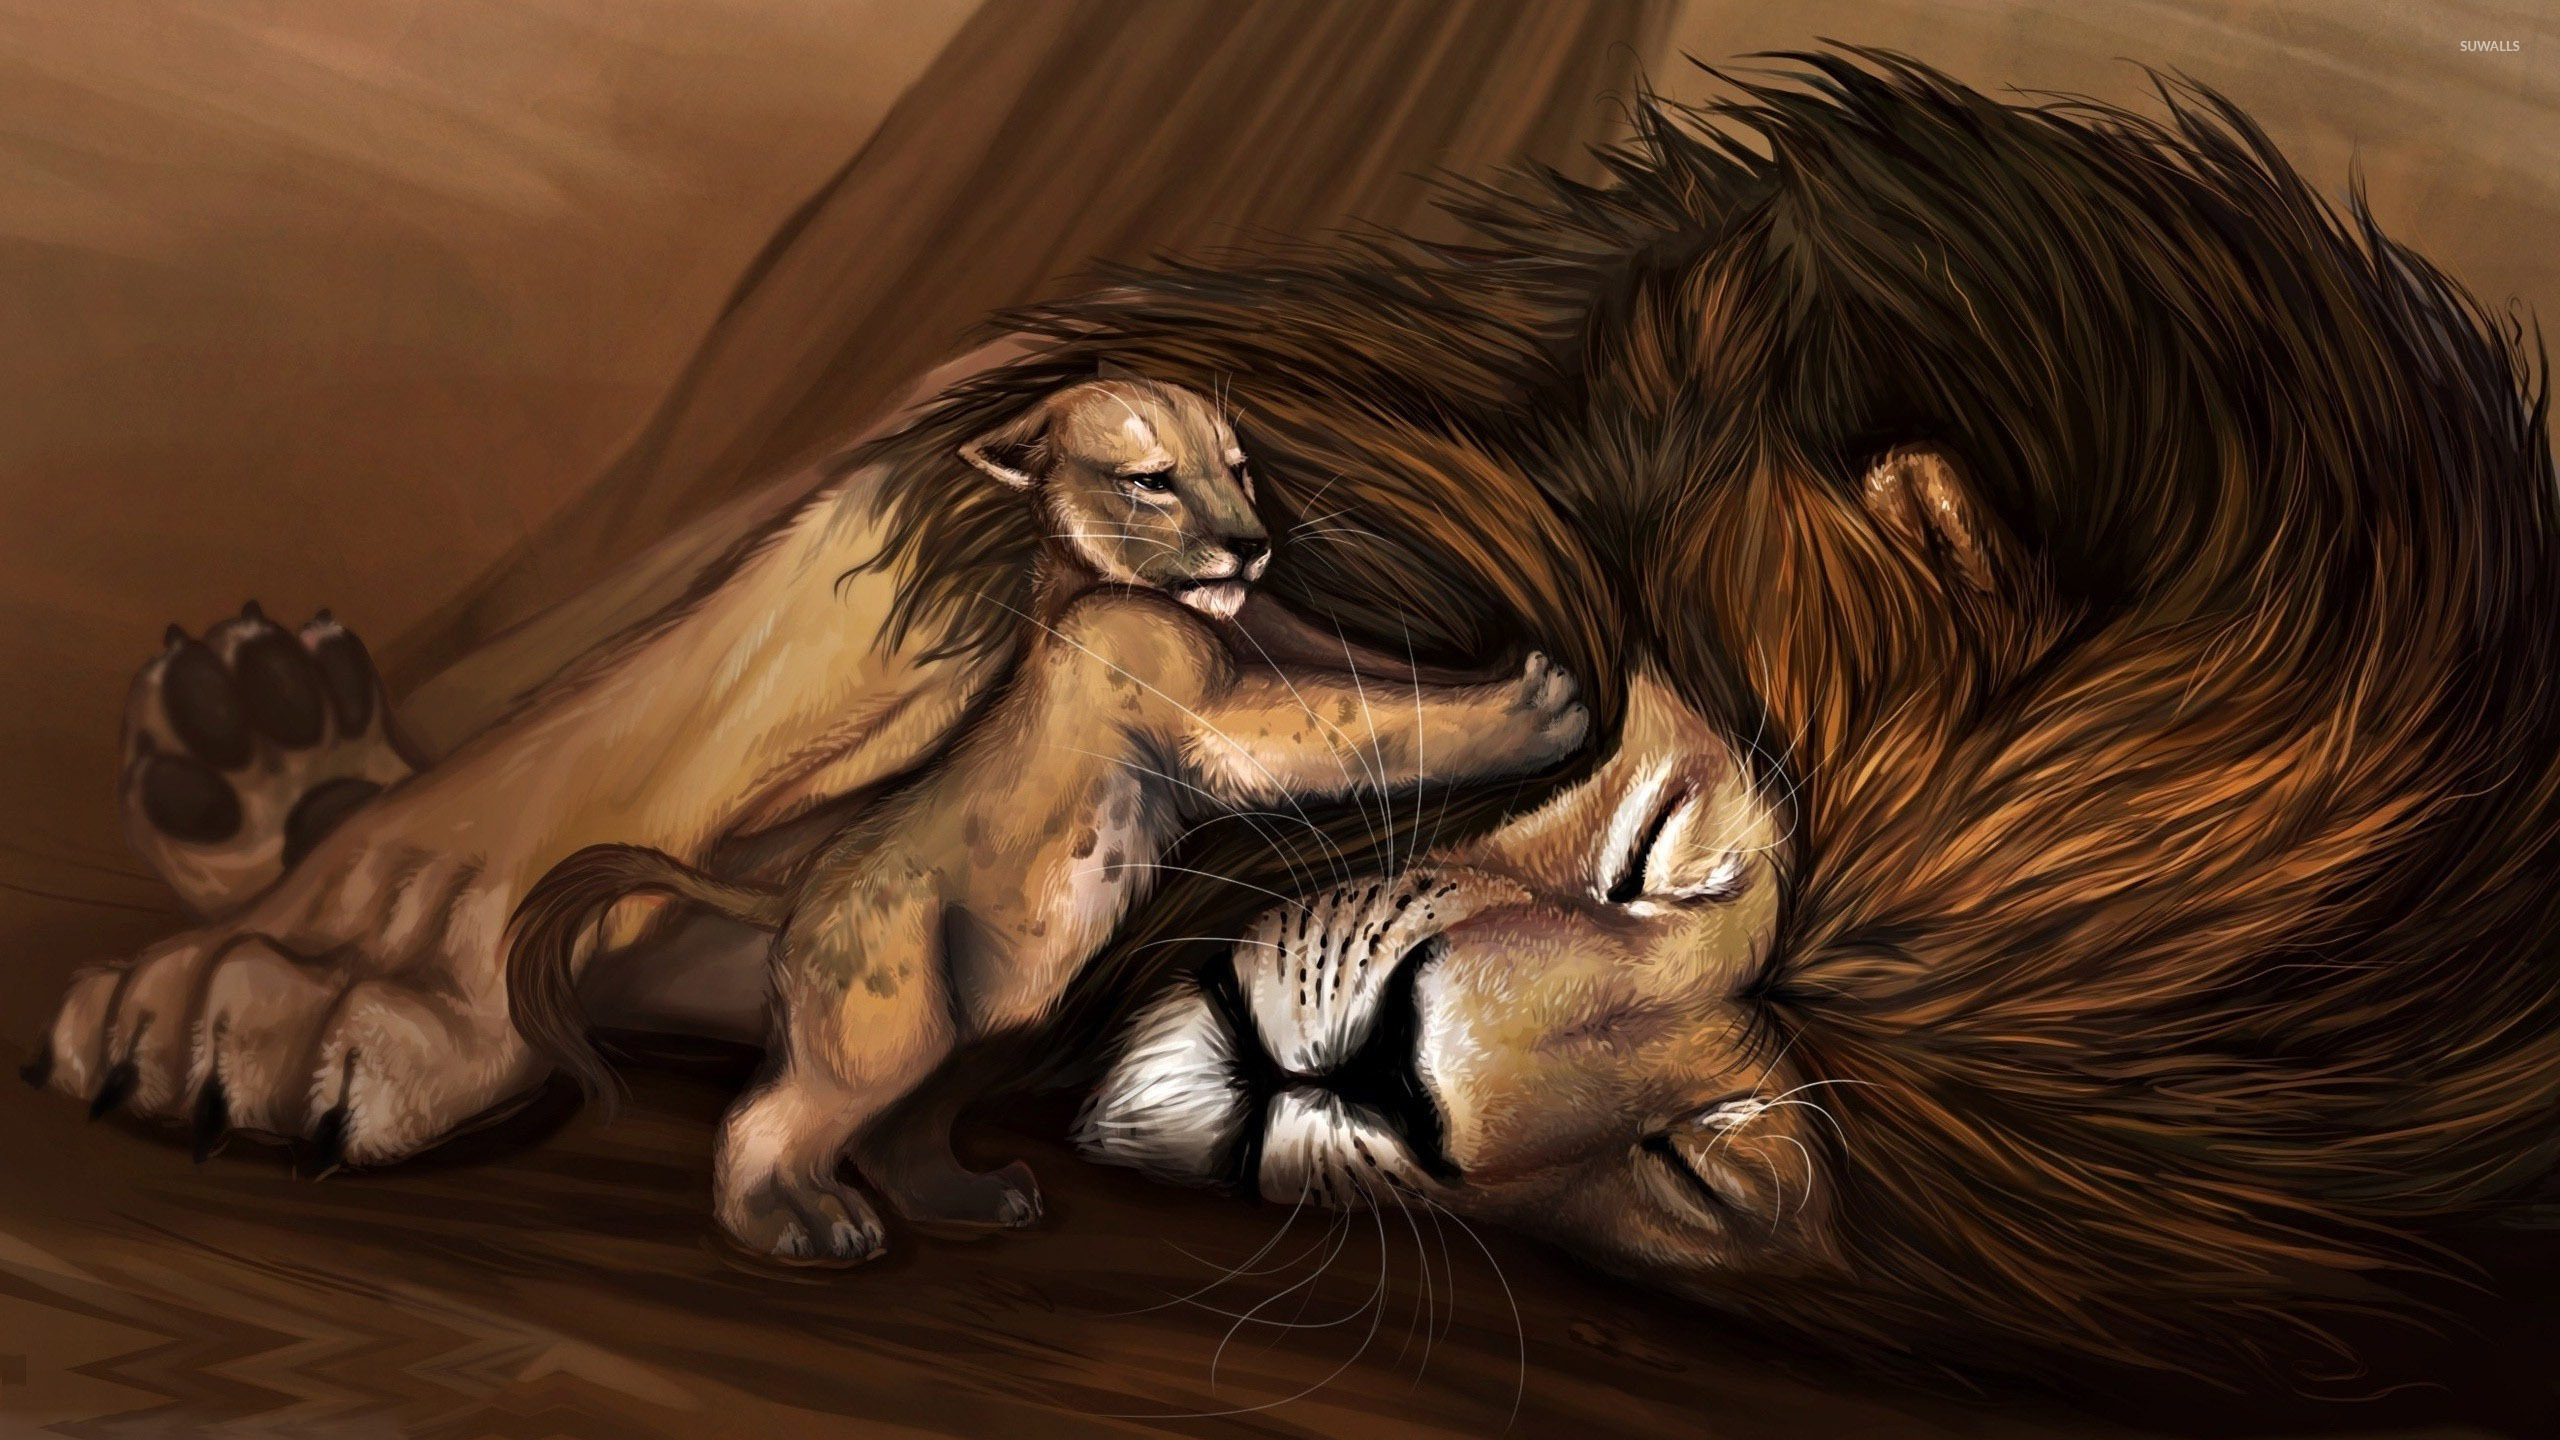 Simba Trying To Wake Up Mufasa Wallpaper Fantasy The Lion King